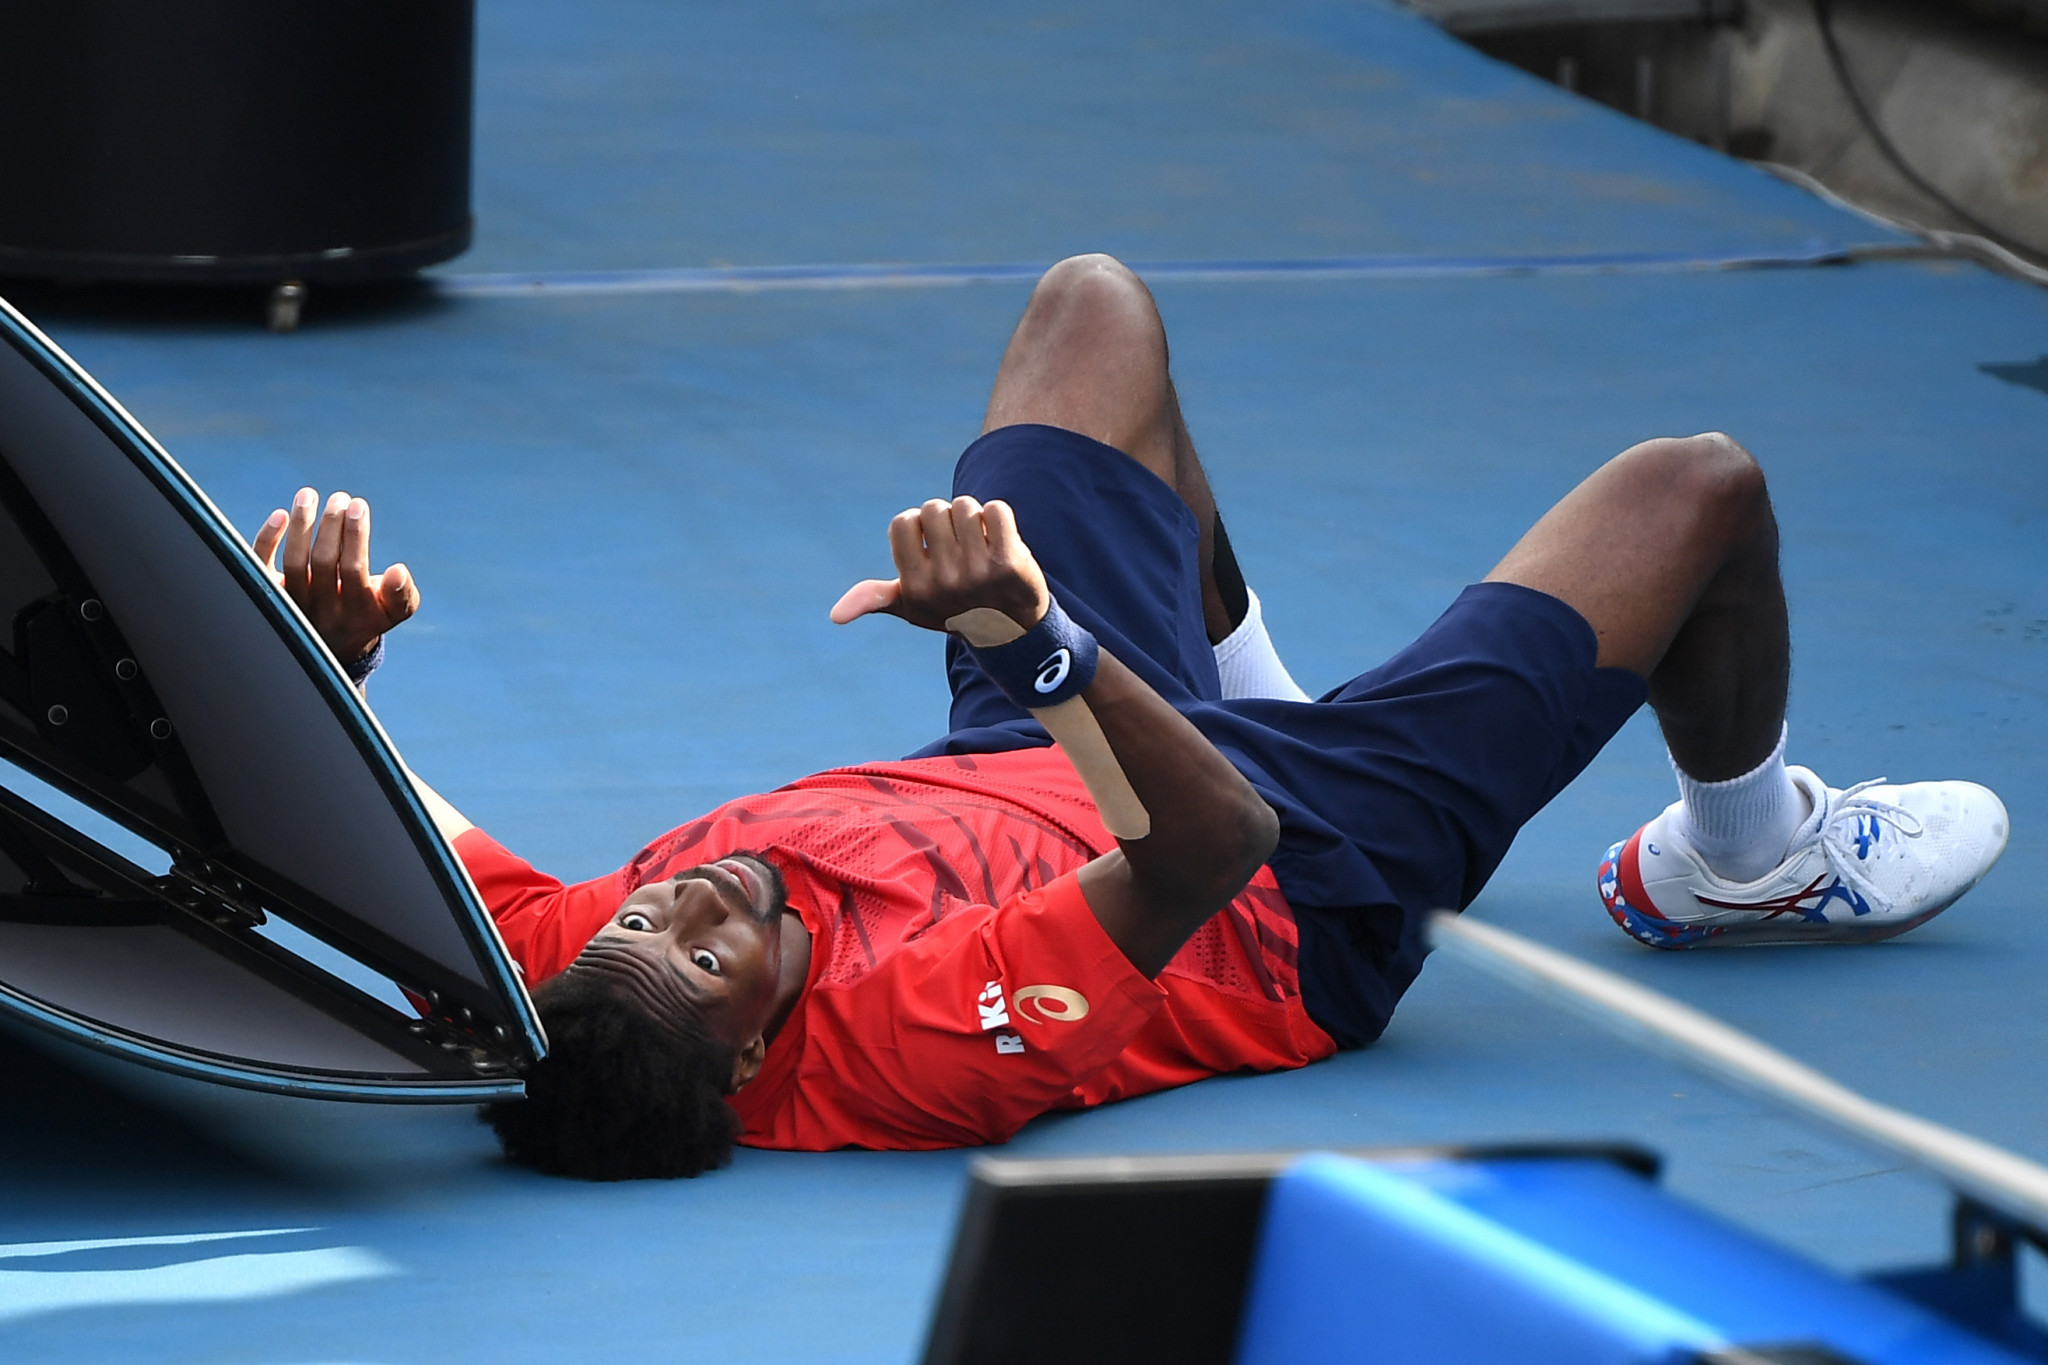 France's Gael Monfils gives the thumbs up after hitting the deck during his match ©Getty Images